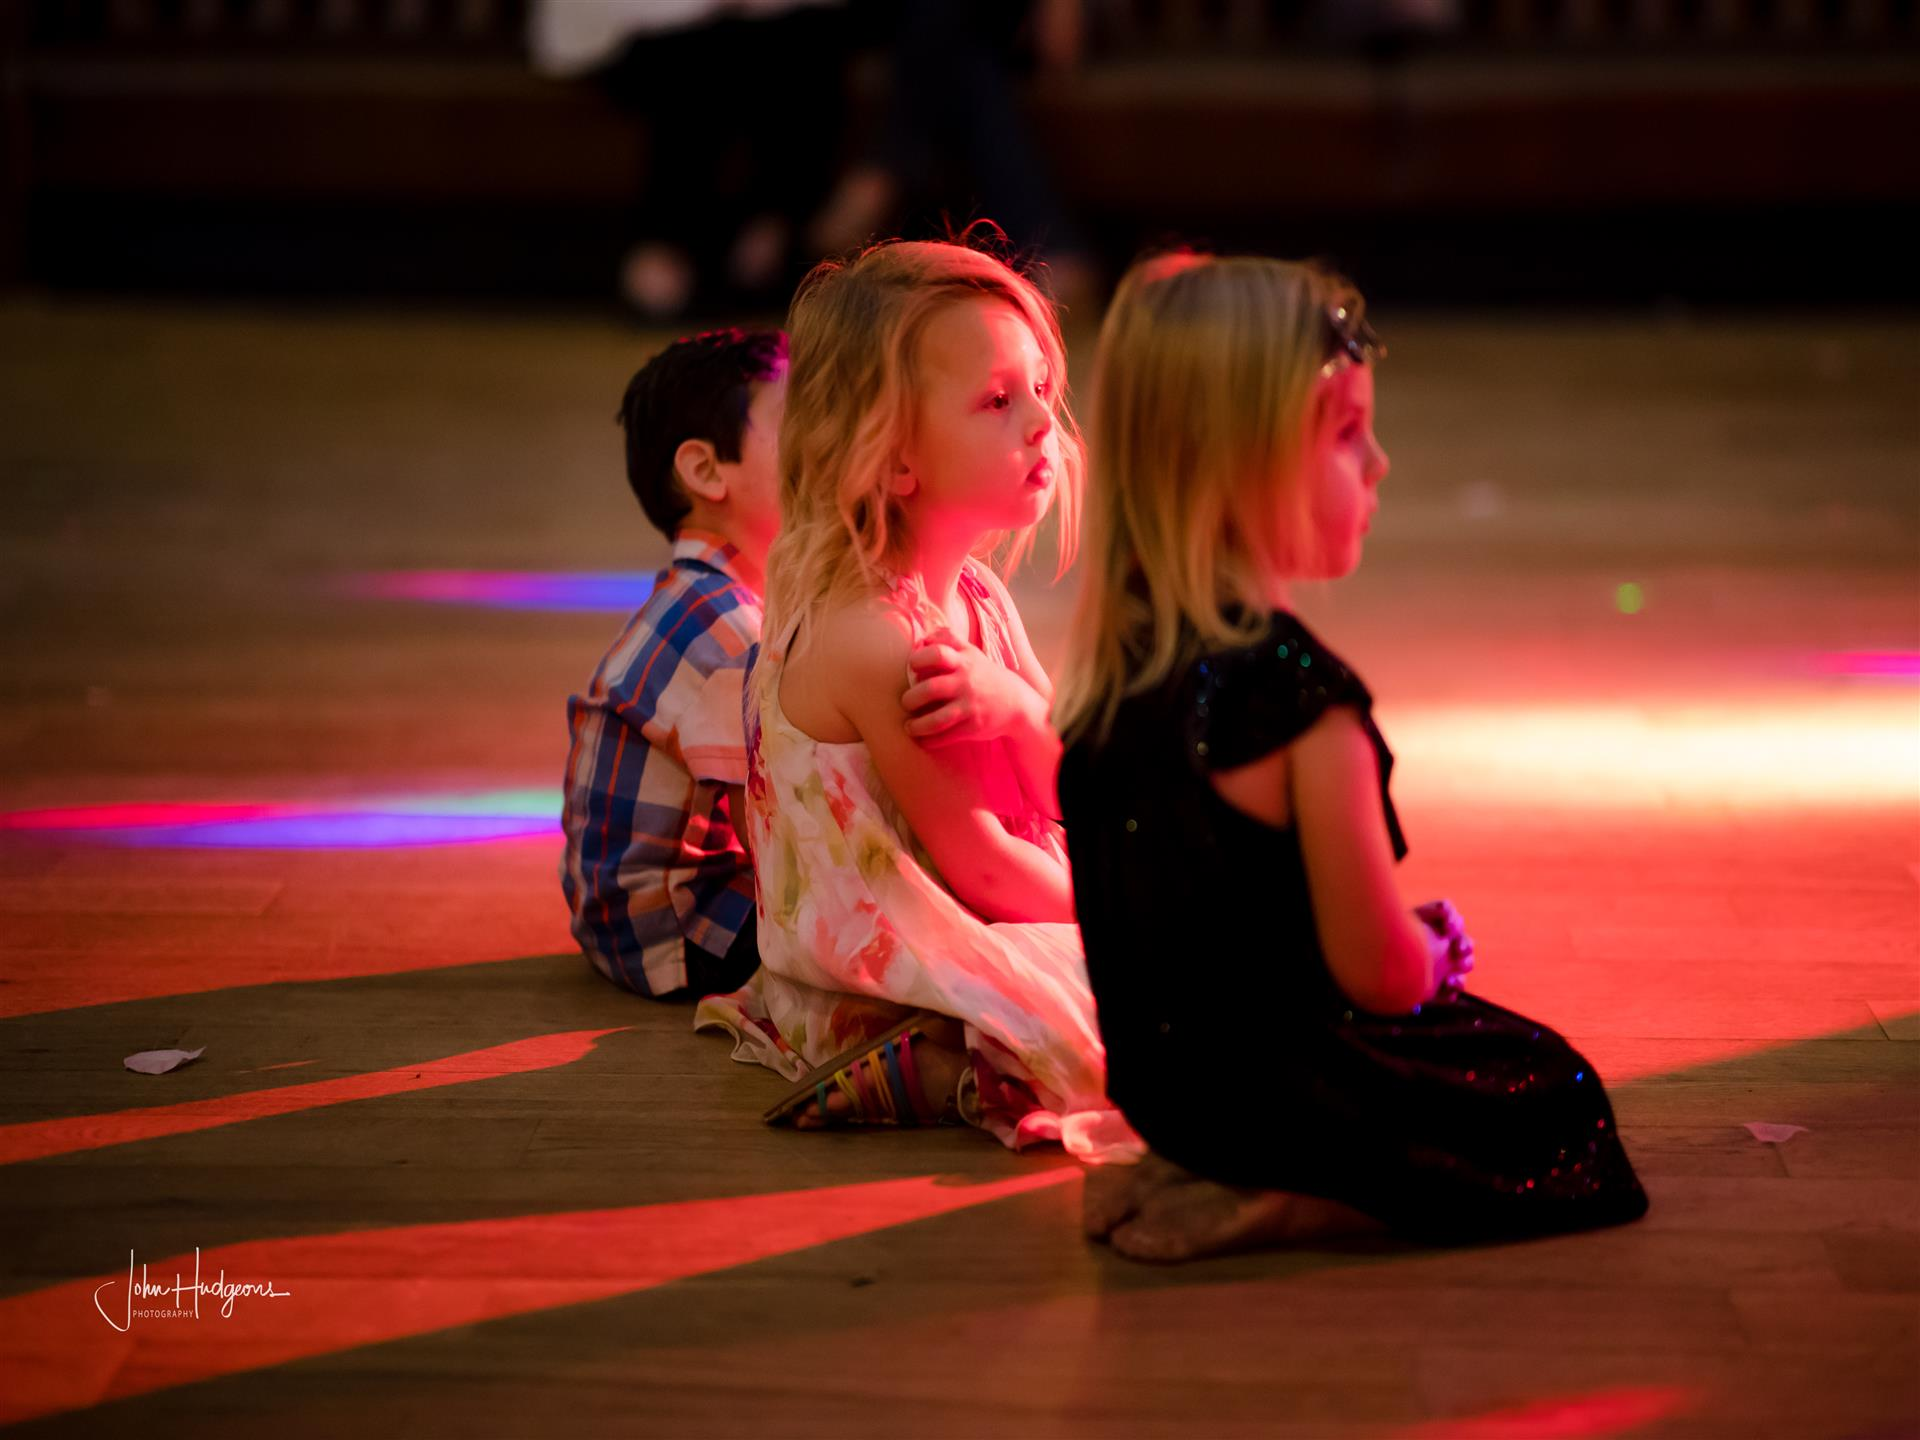 Three children sitting on dance floor